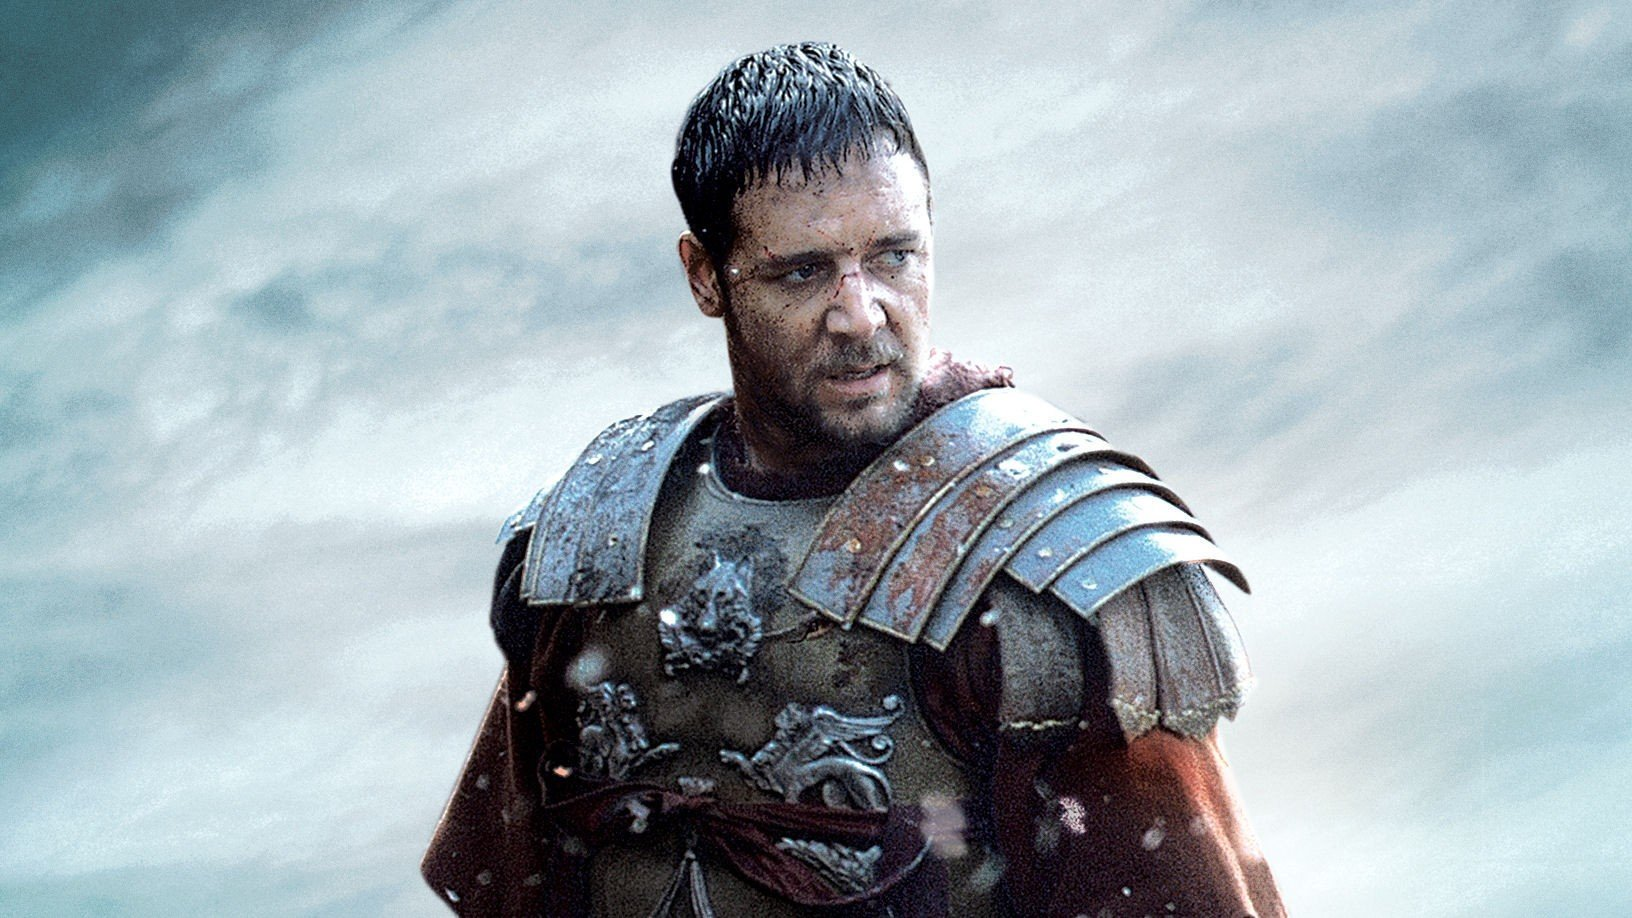 Movies Gladiator Movie Russell Crowe 1439x1403 Wallpaper: Gladiator HD Wallpaper